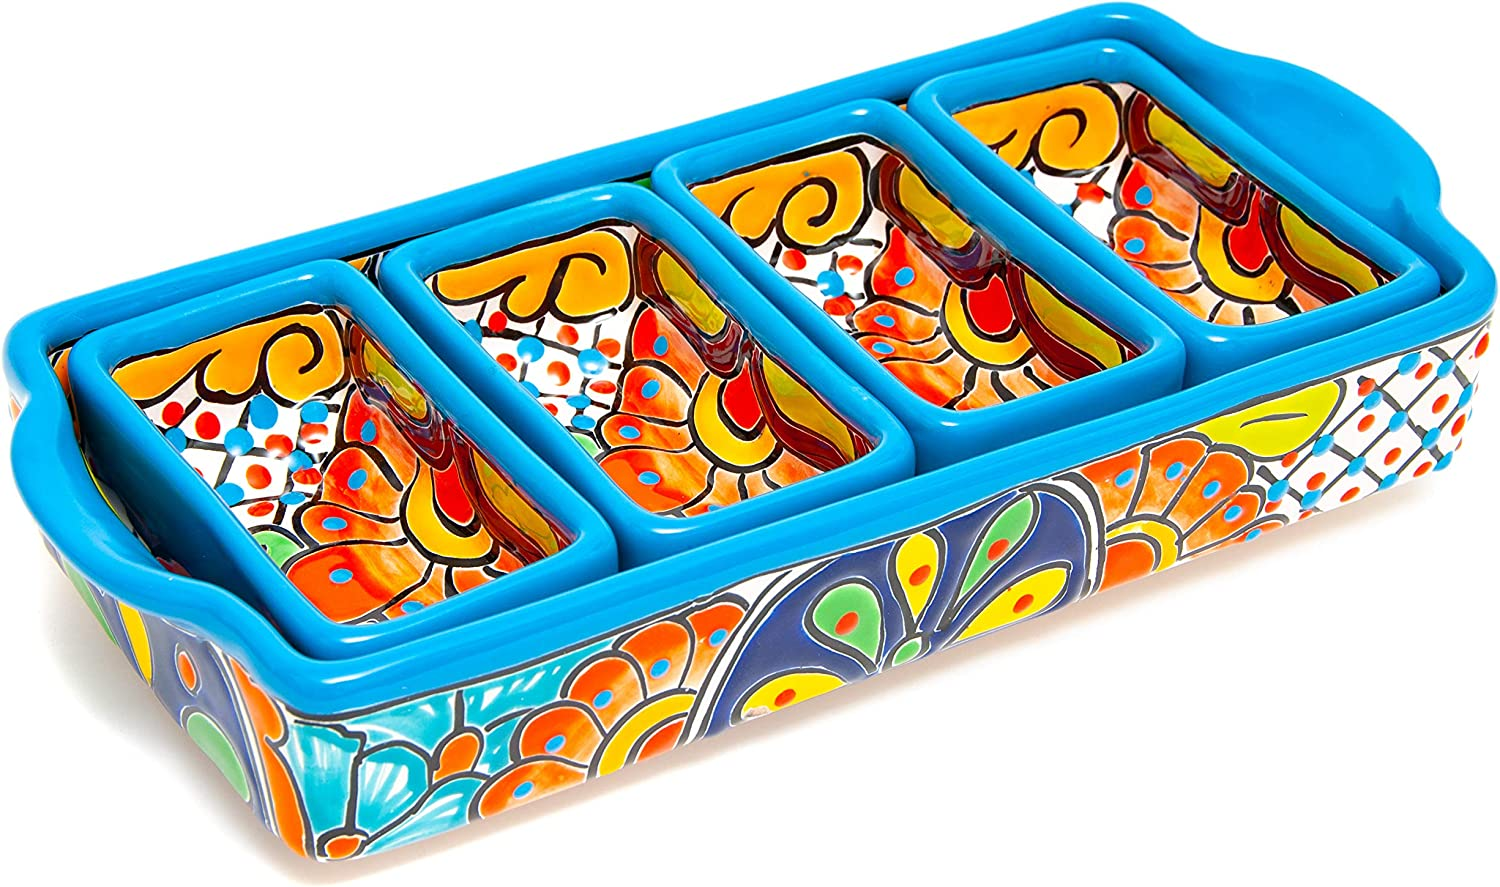 Enchanted Talavera Mexican Pottery Ceramic Tray Appetizer trend Large discharge sale rank Large